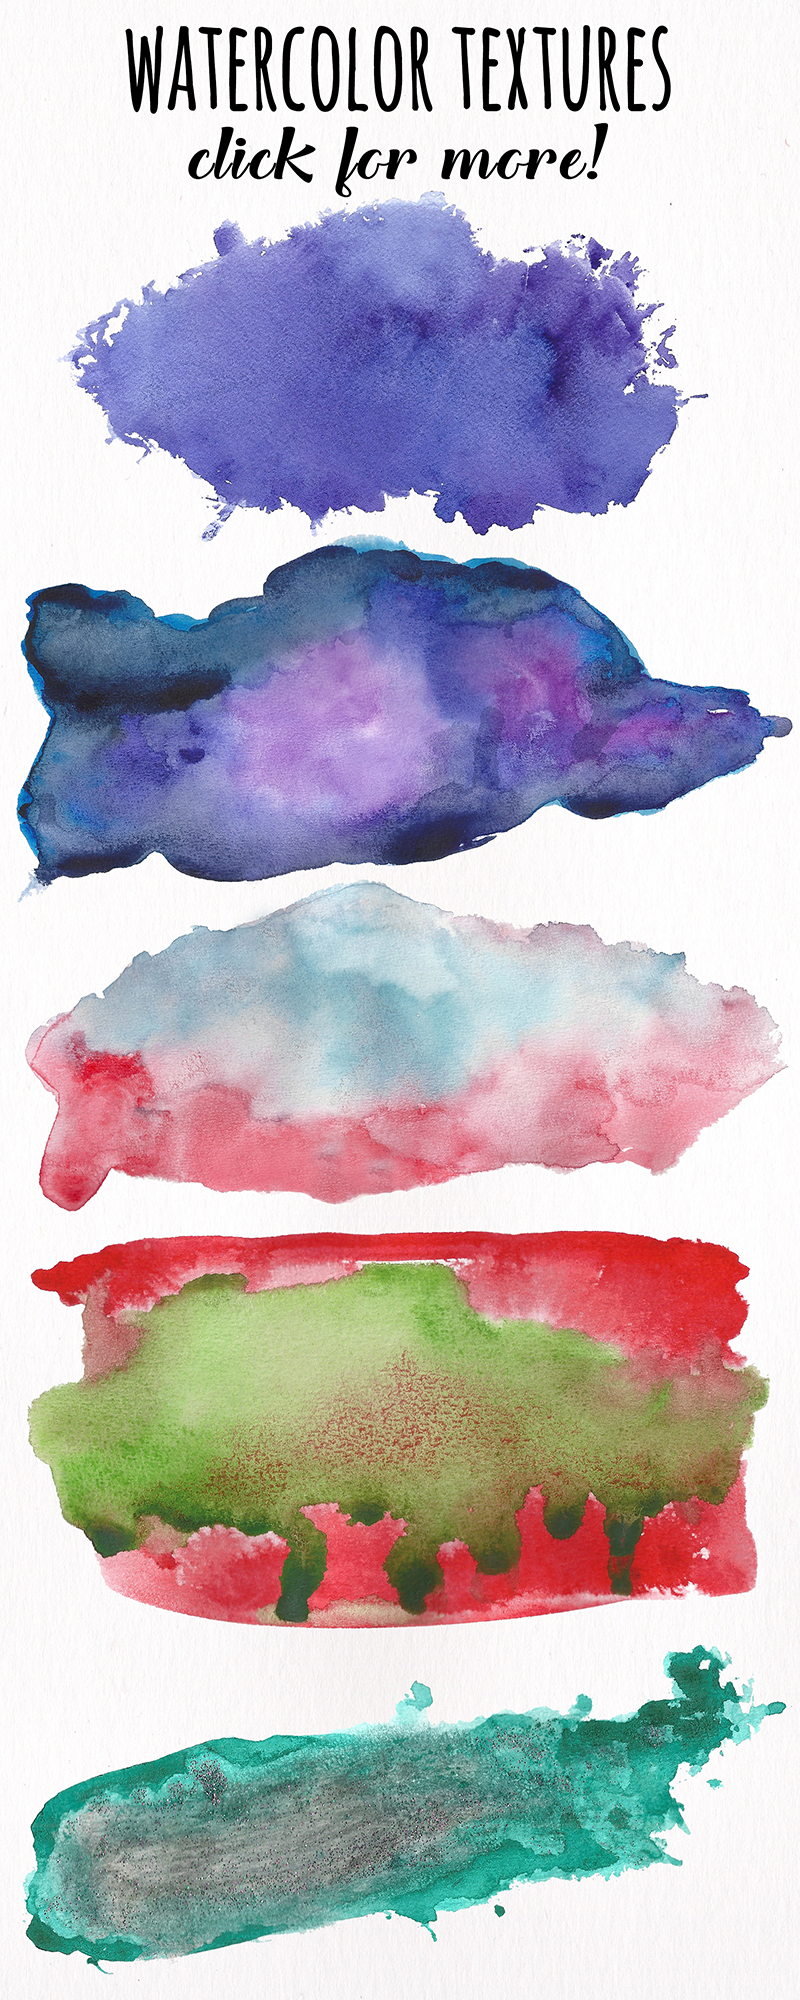 Watercolor Textures - card edition example image 11